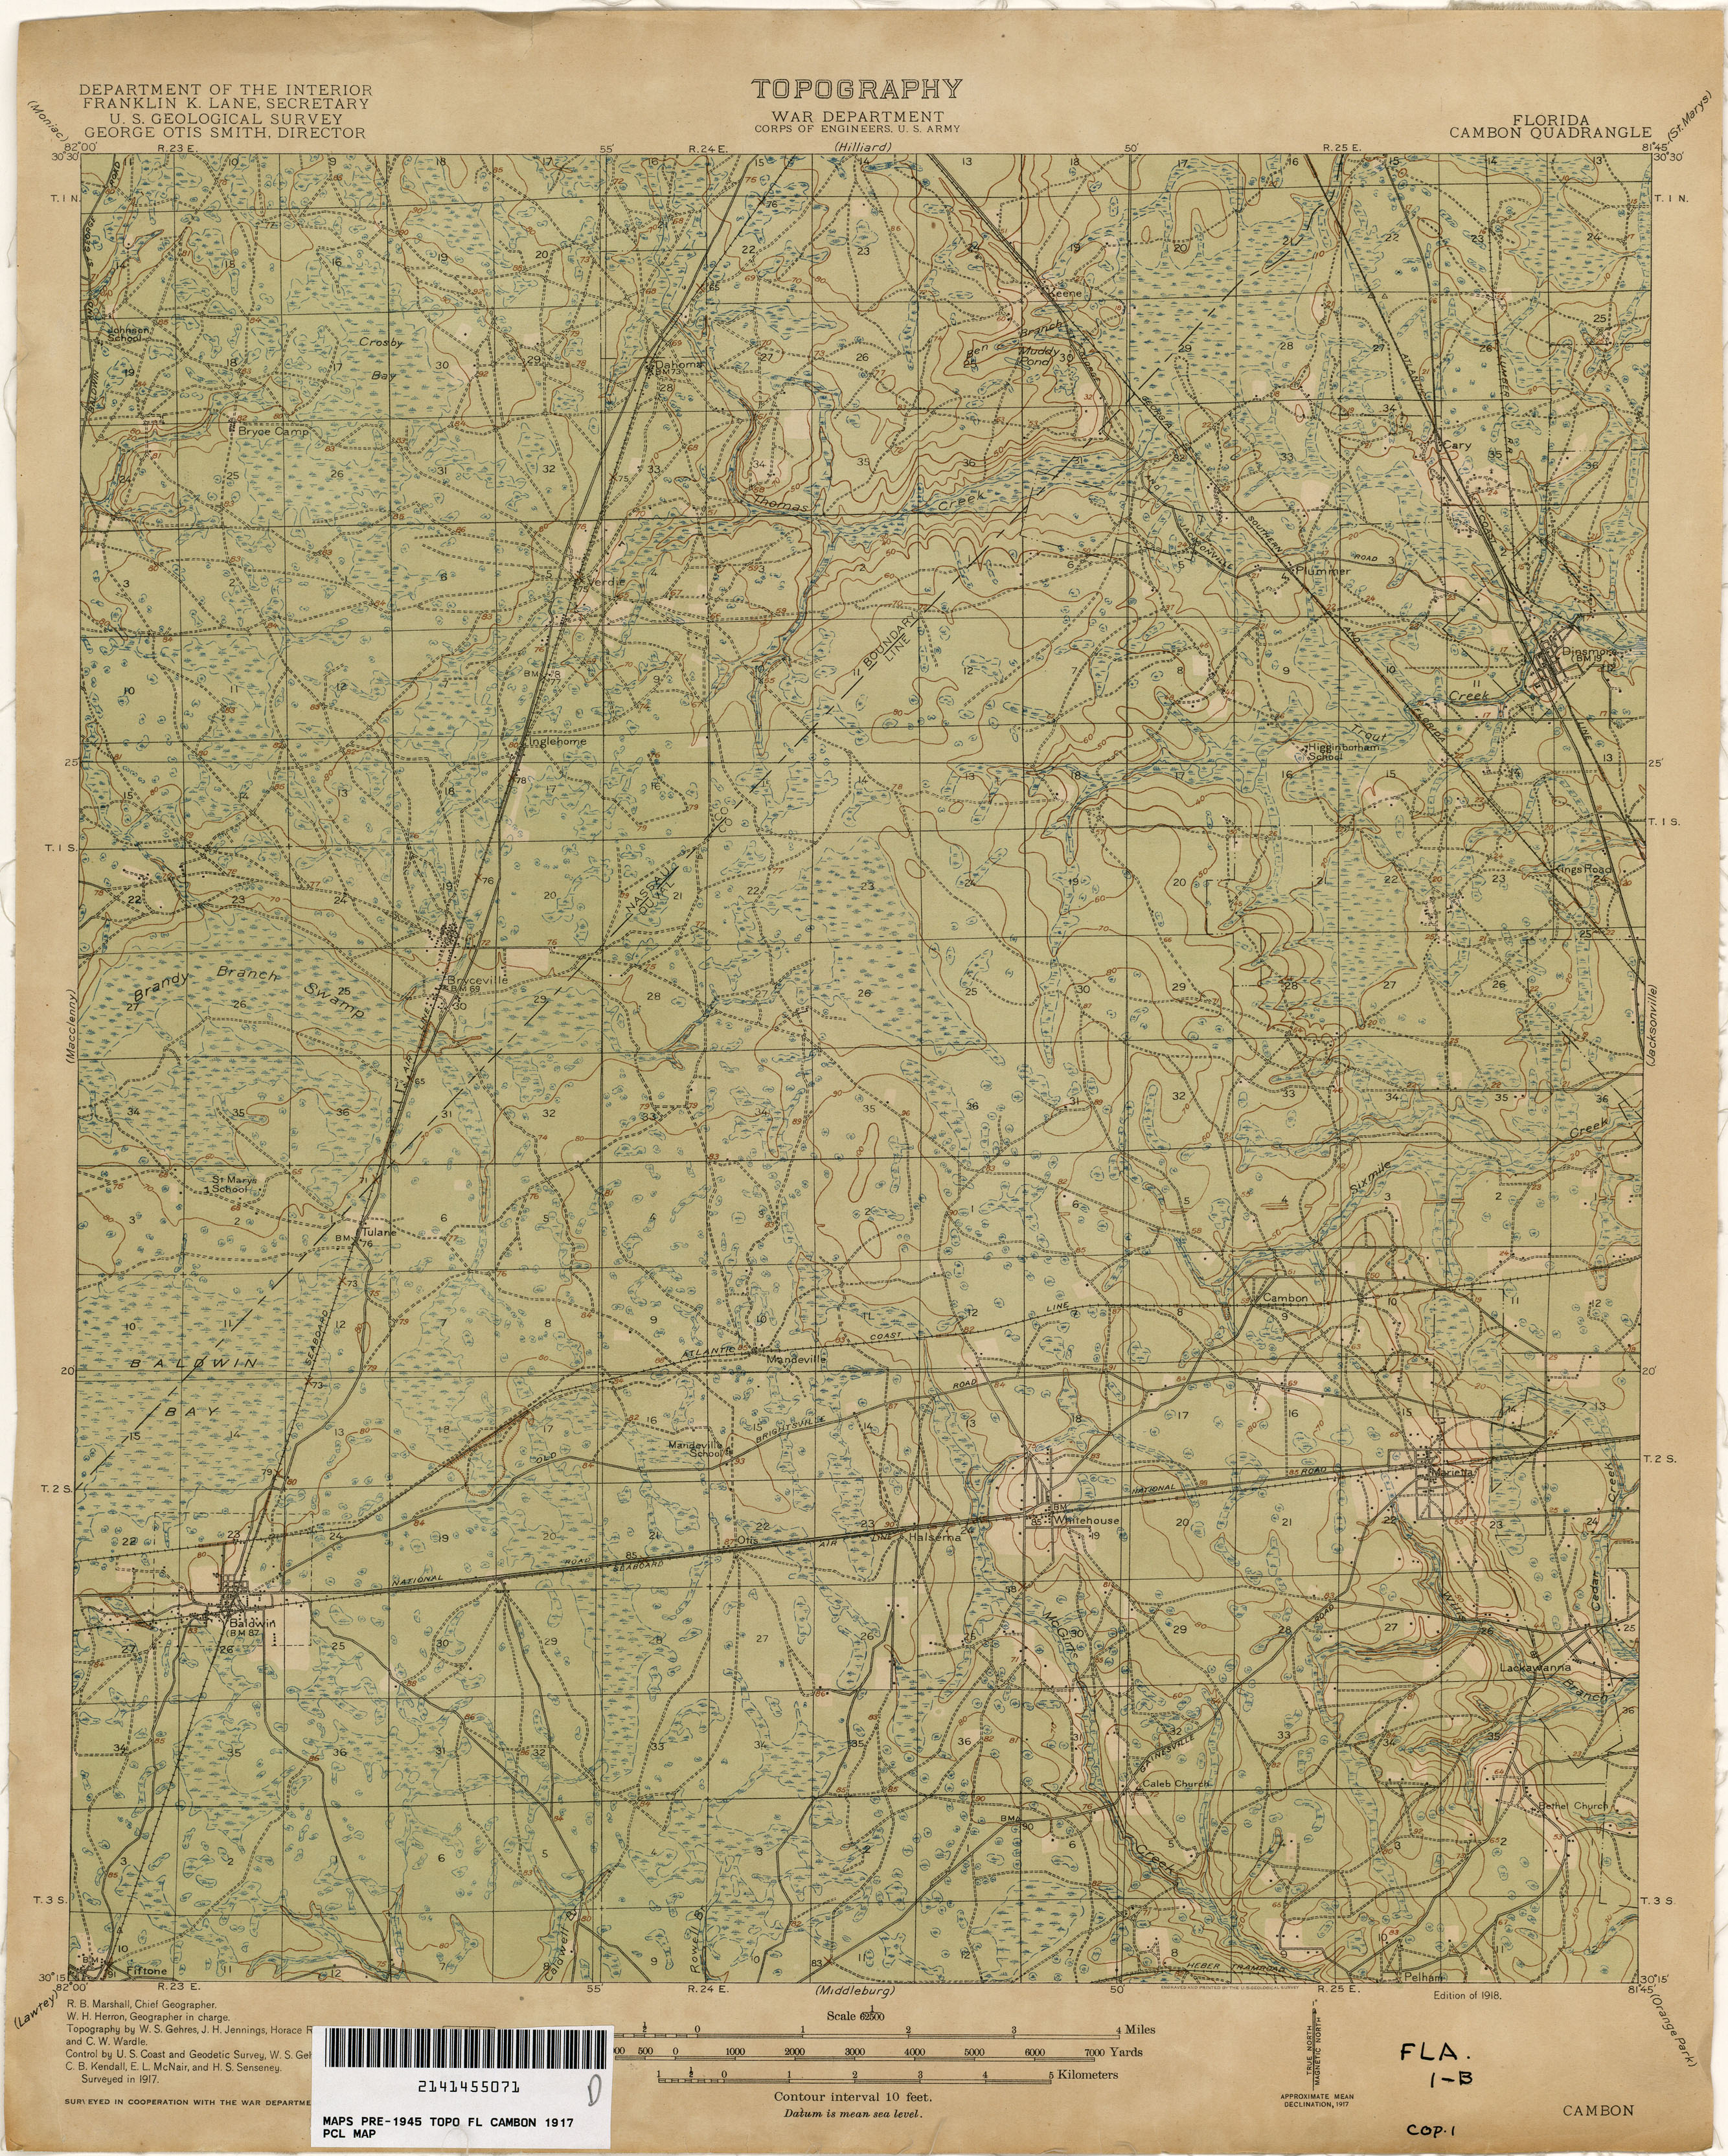 Florida Historical Topographic Maps - Perry-Castañeda Map Collection - Early Florida Maps